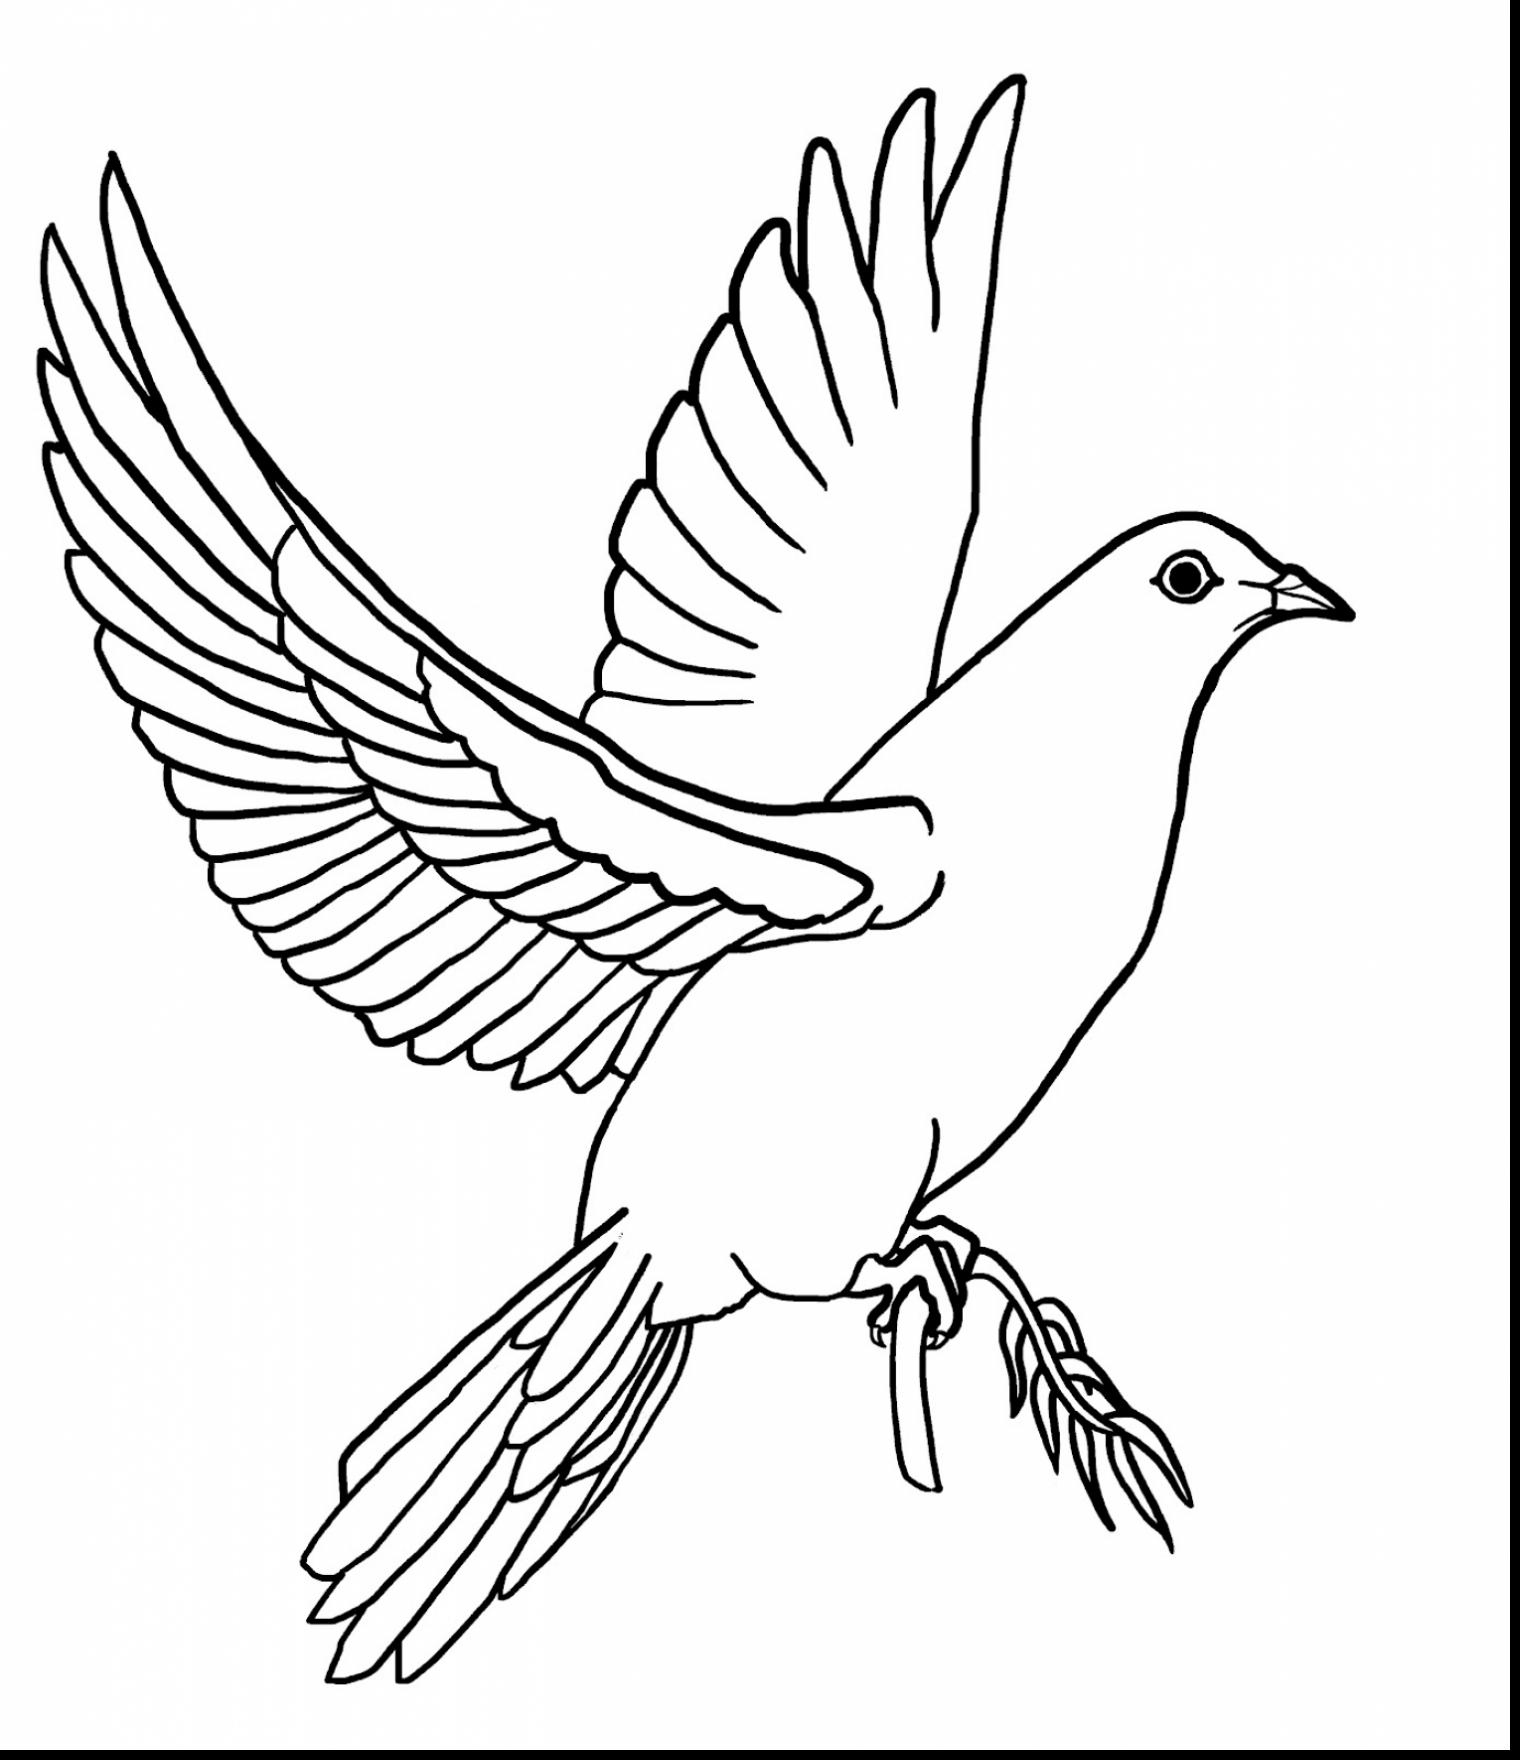 dove drawing breath of peace charcoal drawing hand drawn dove design by drawing dove